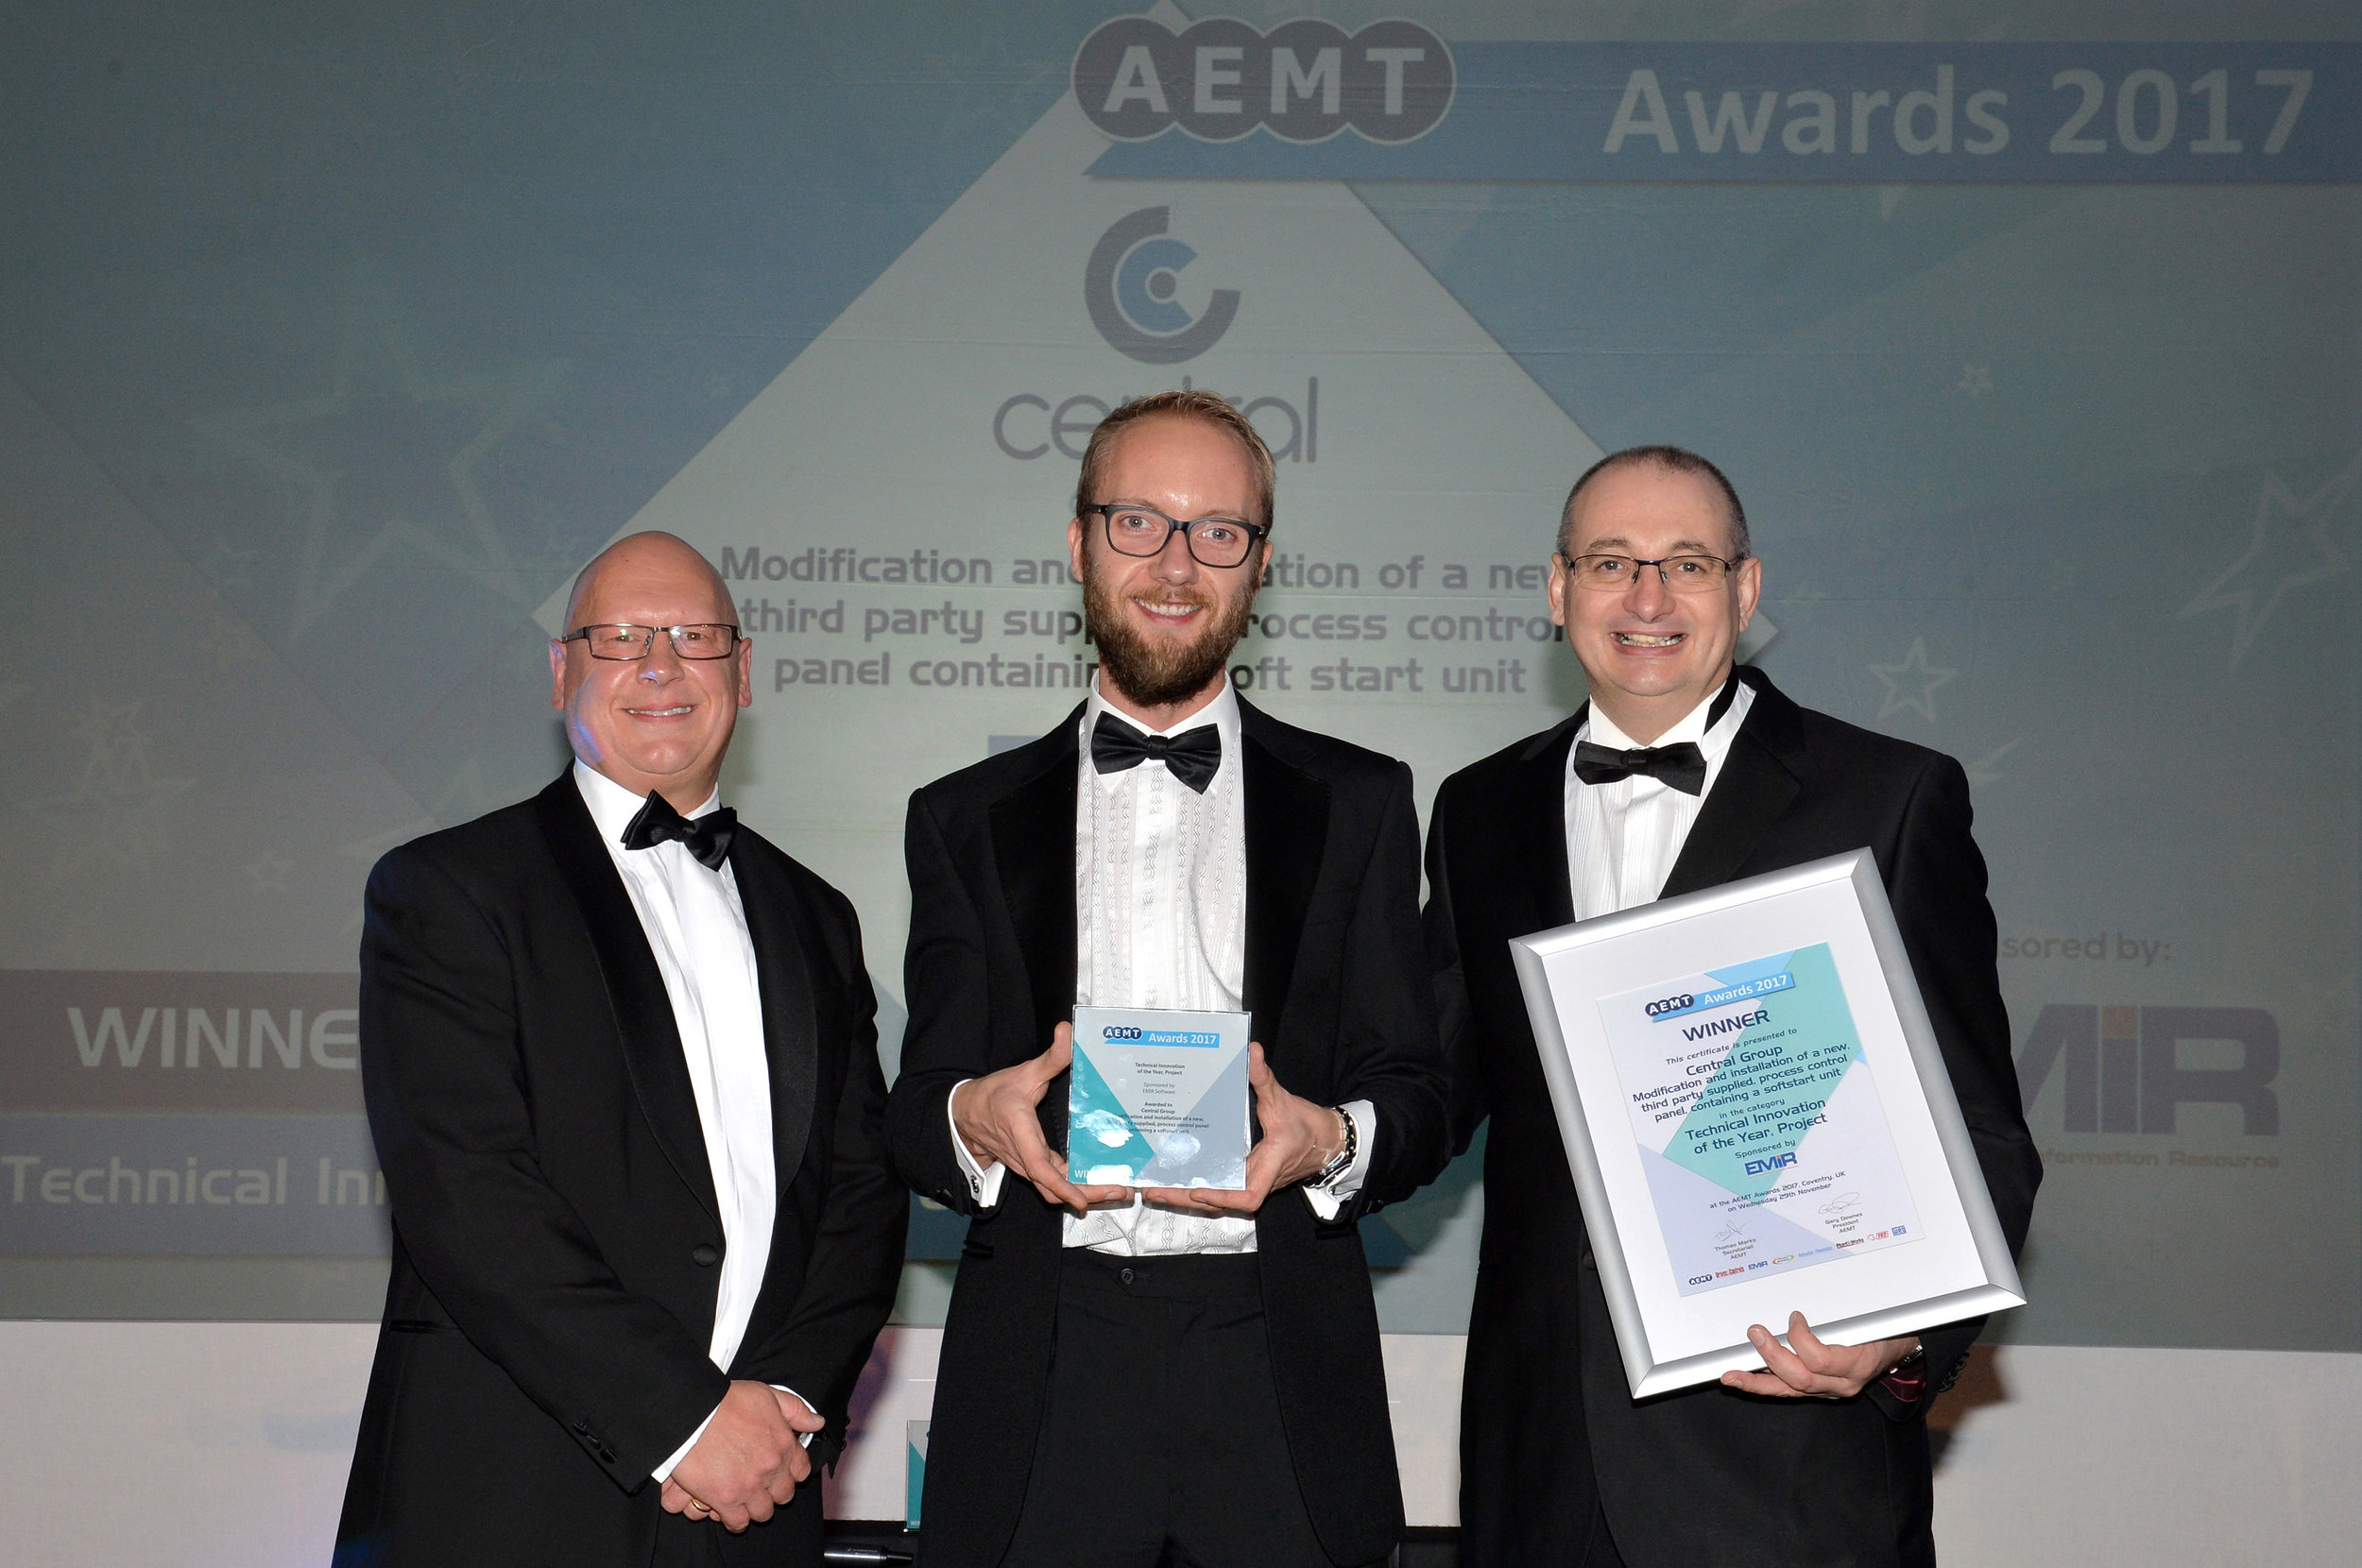 Pictured from left to right:   Andrew Castle, Touchwave Media; Liam Brown, Central Group; and Steve Ashman, EMIR Software (category sponsors)